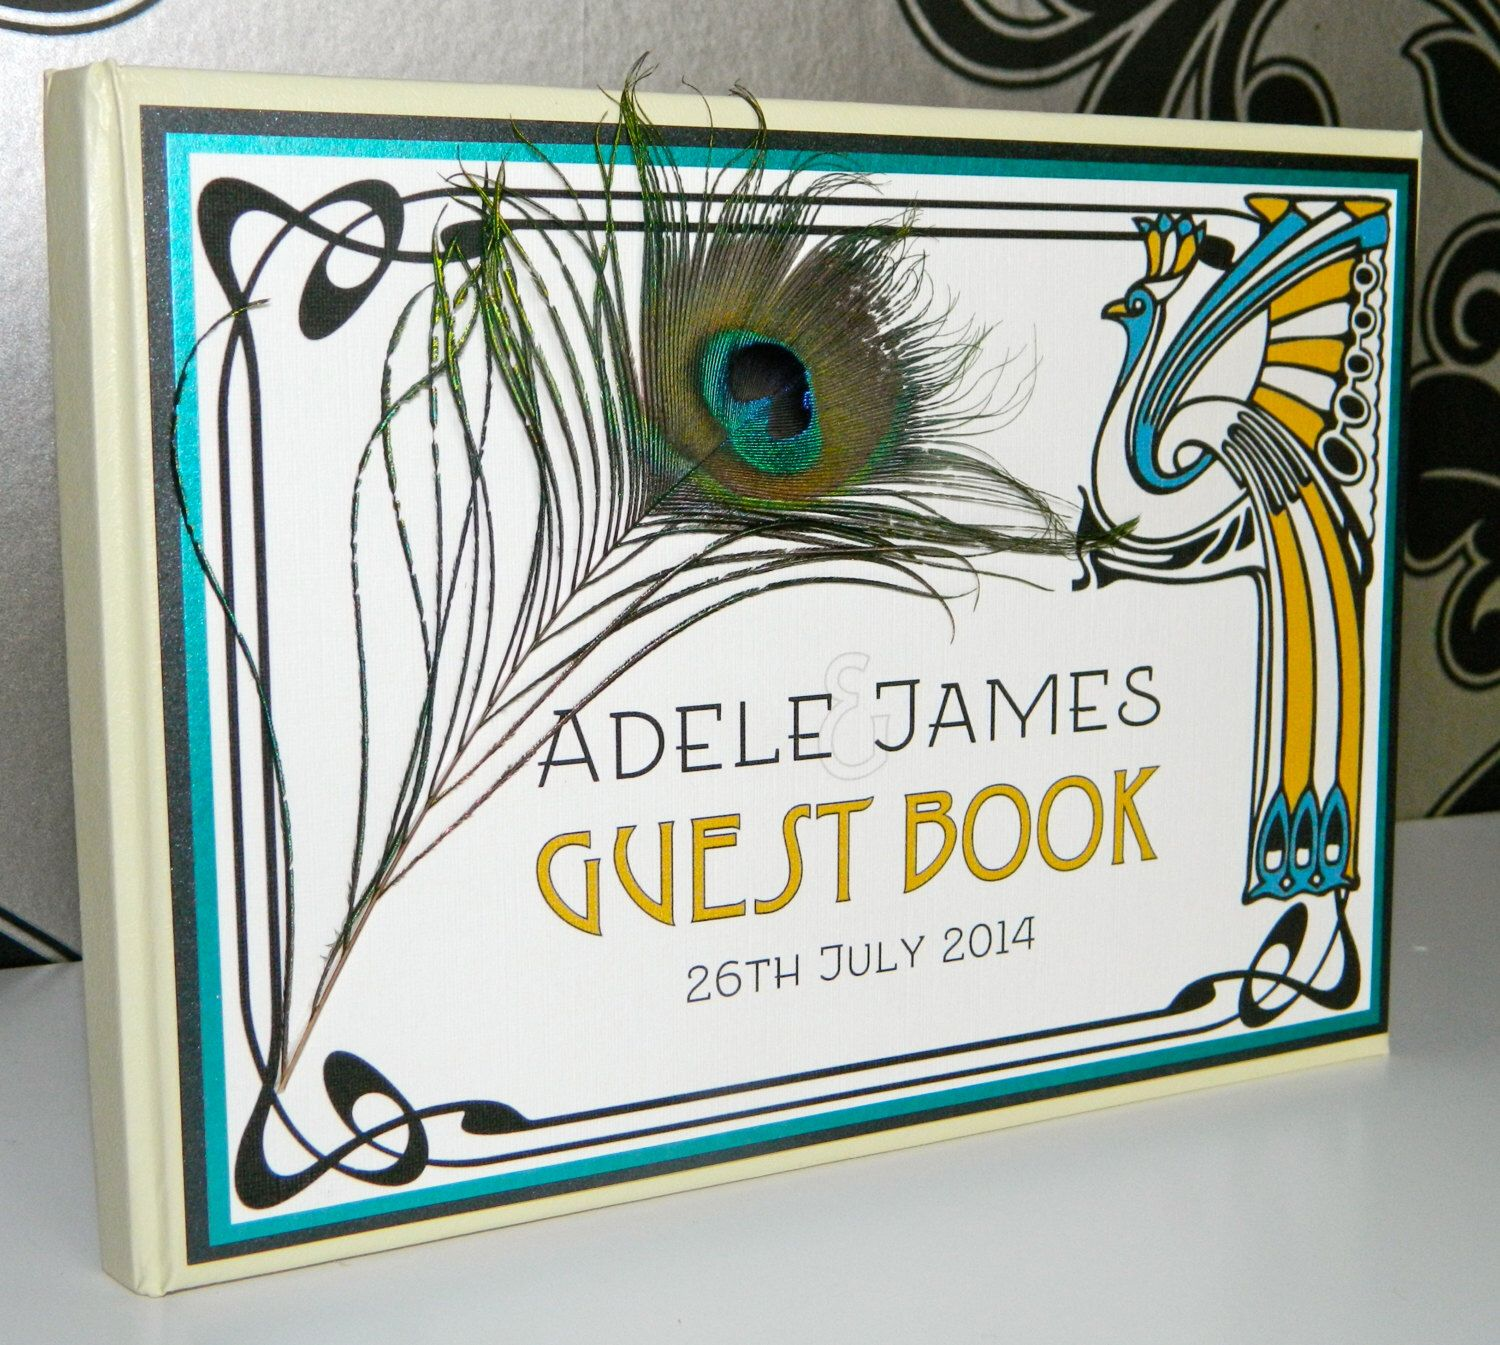 Art Nouveau   Peacock Feather   Personalised Wedding Guest Book by HandmadeByHannahMP on Etsy https://www.etsy.com/listing/207854353/art-nouveau-peacock-feather-personalised